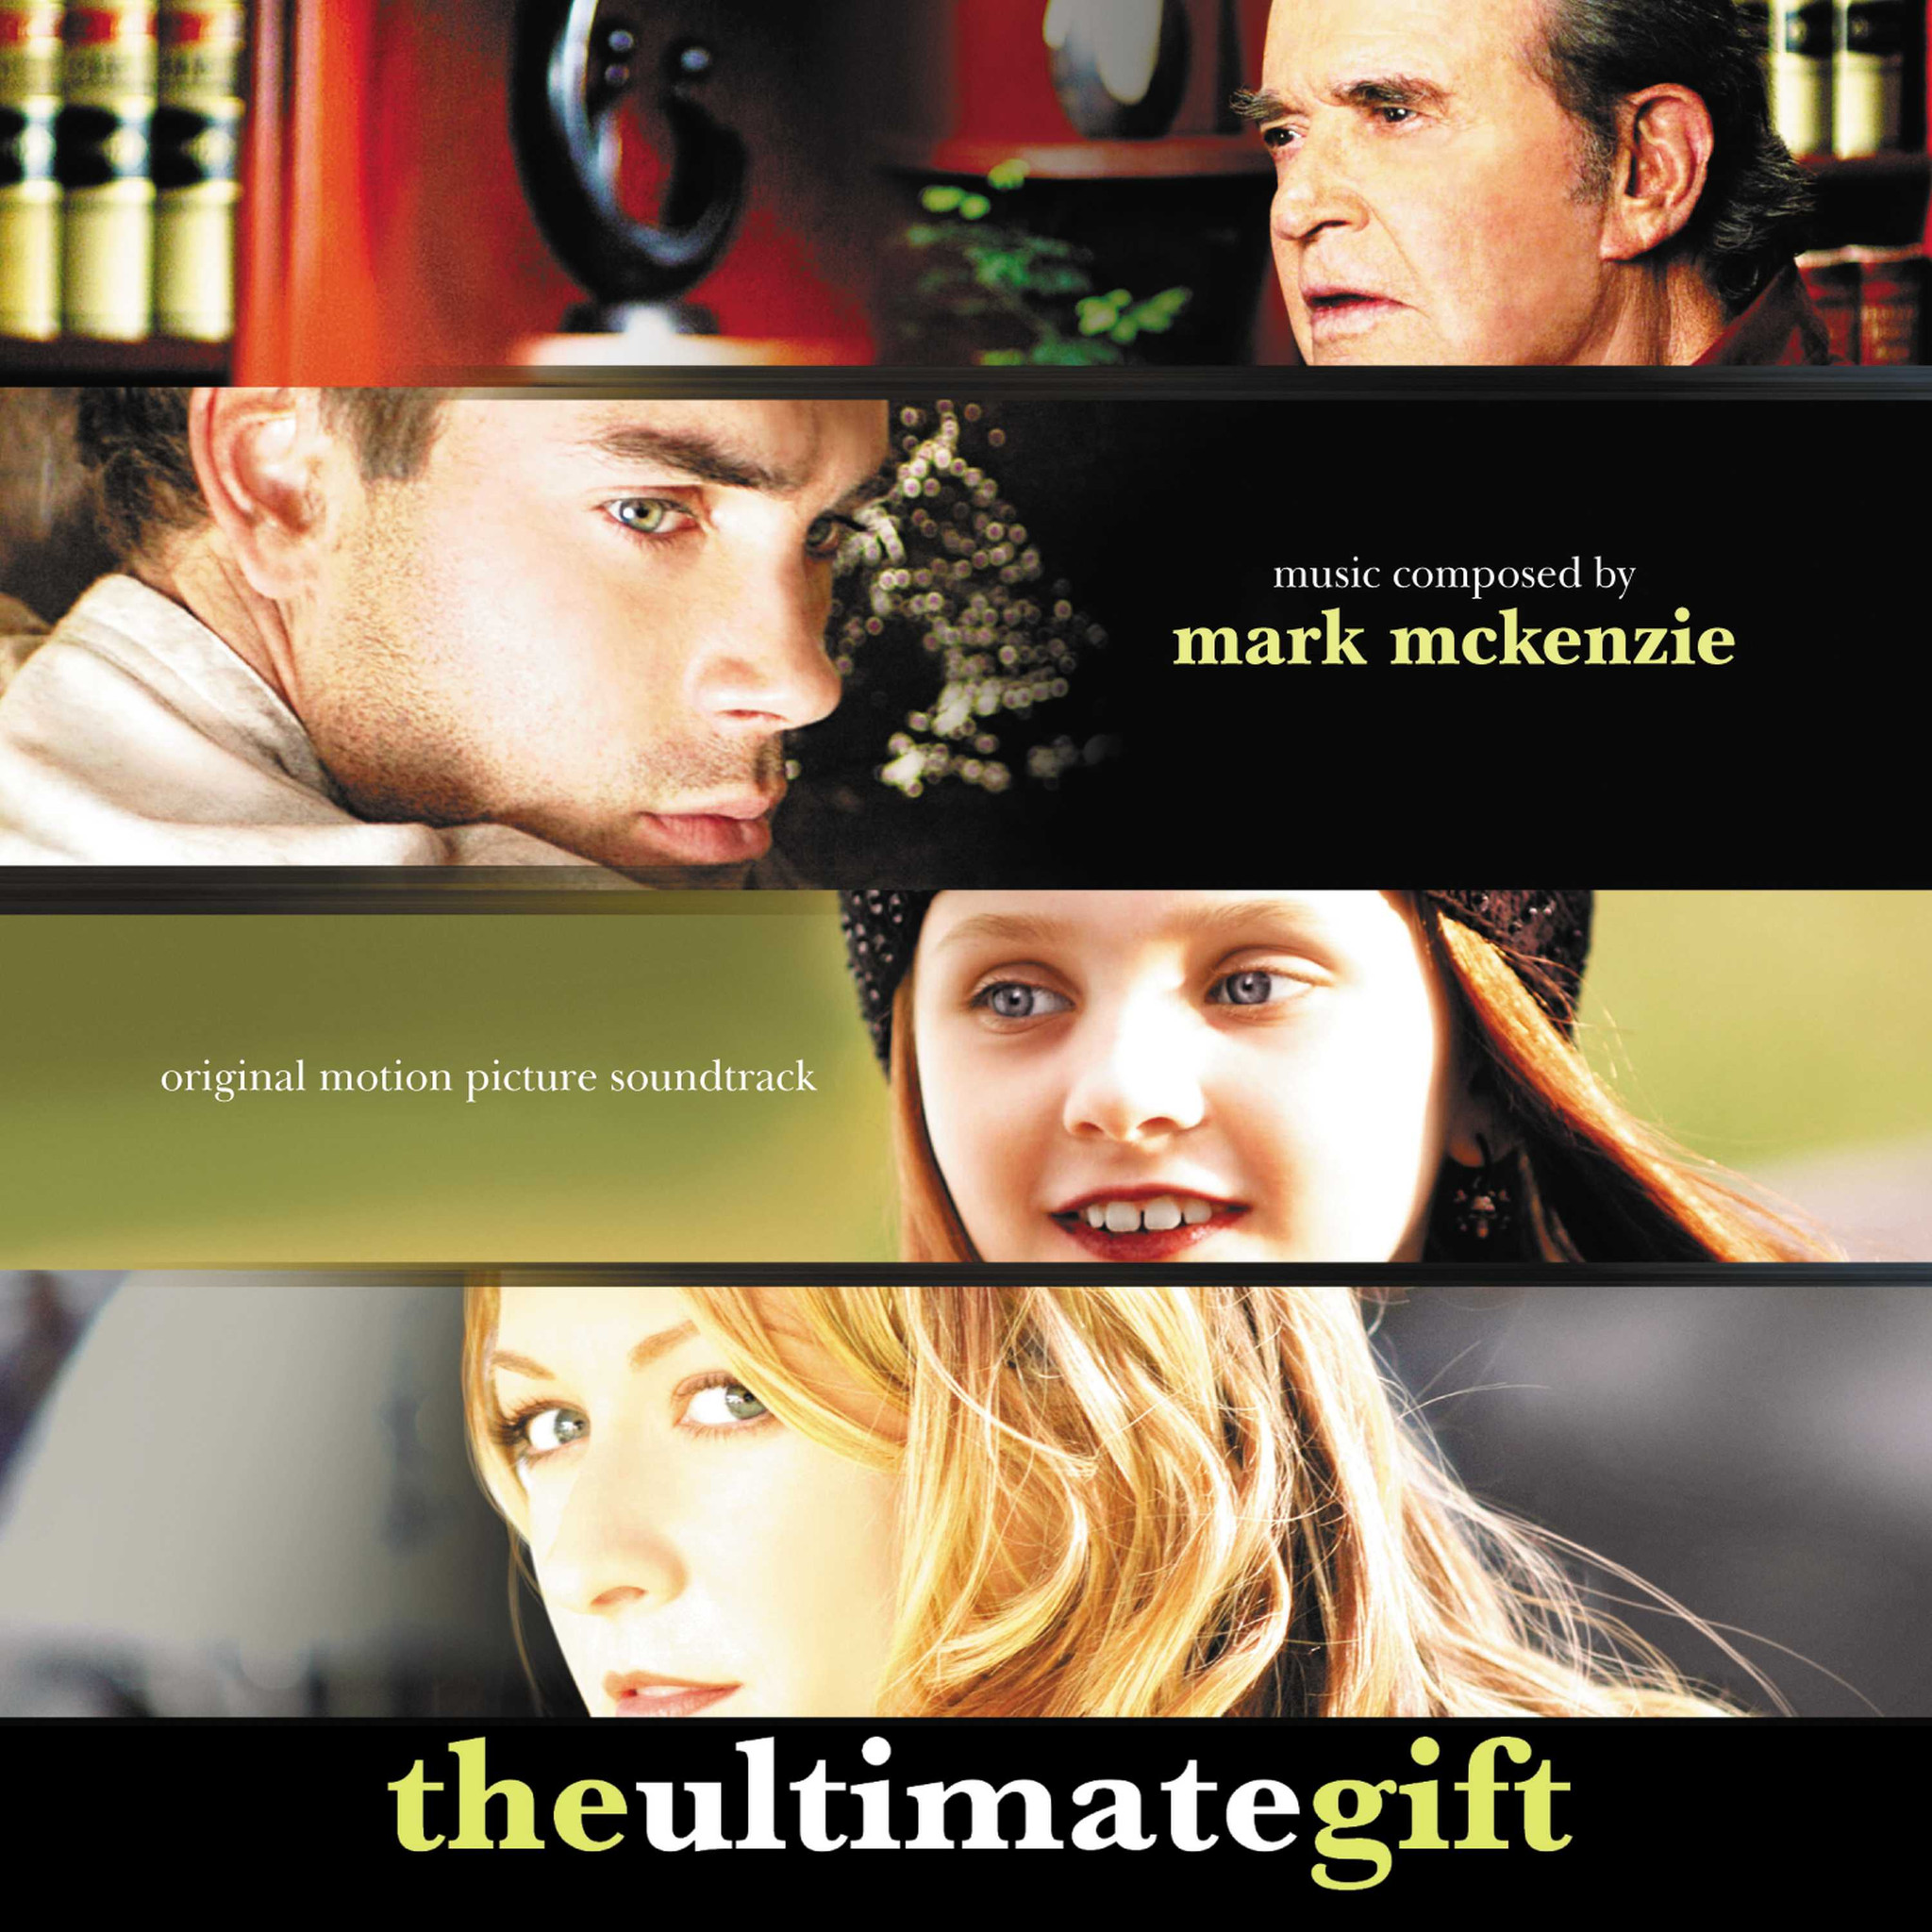 Ultimate Gift (Score) / O.s.t. - Ultimate Gift (Score) / O.s.t. - Musik - SOUNDTRACK - 0030206680928 - March 27, 2007